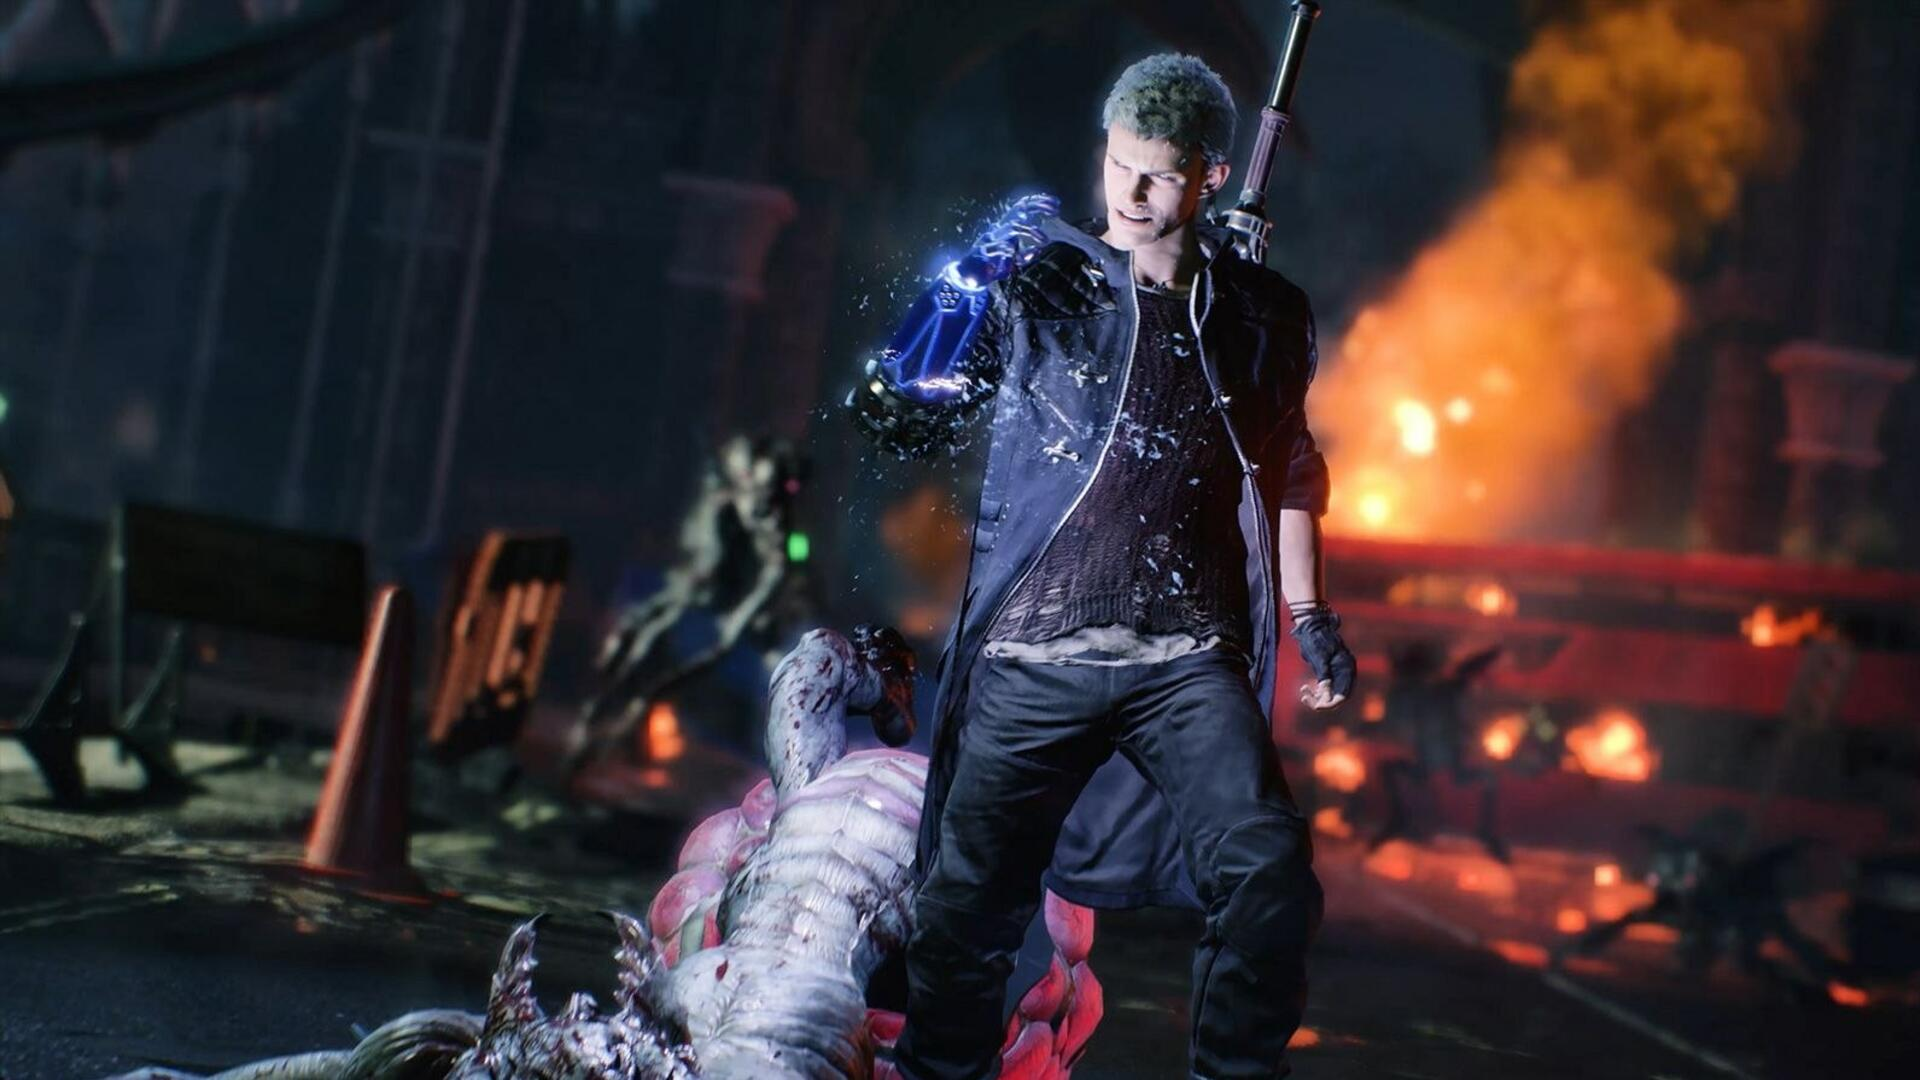 download game devil may cry 5 highly compressed